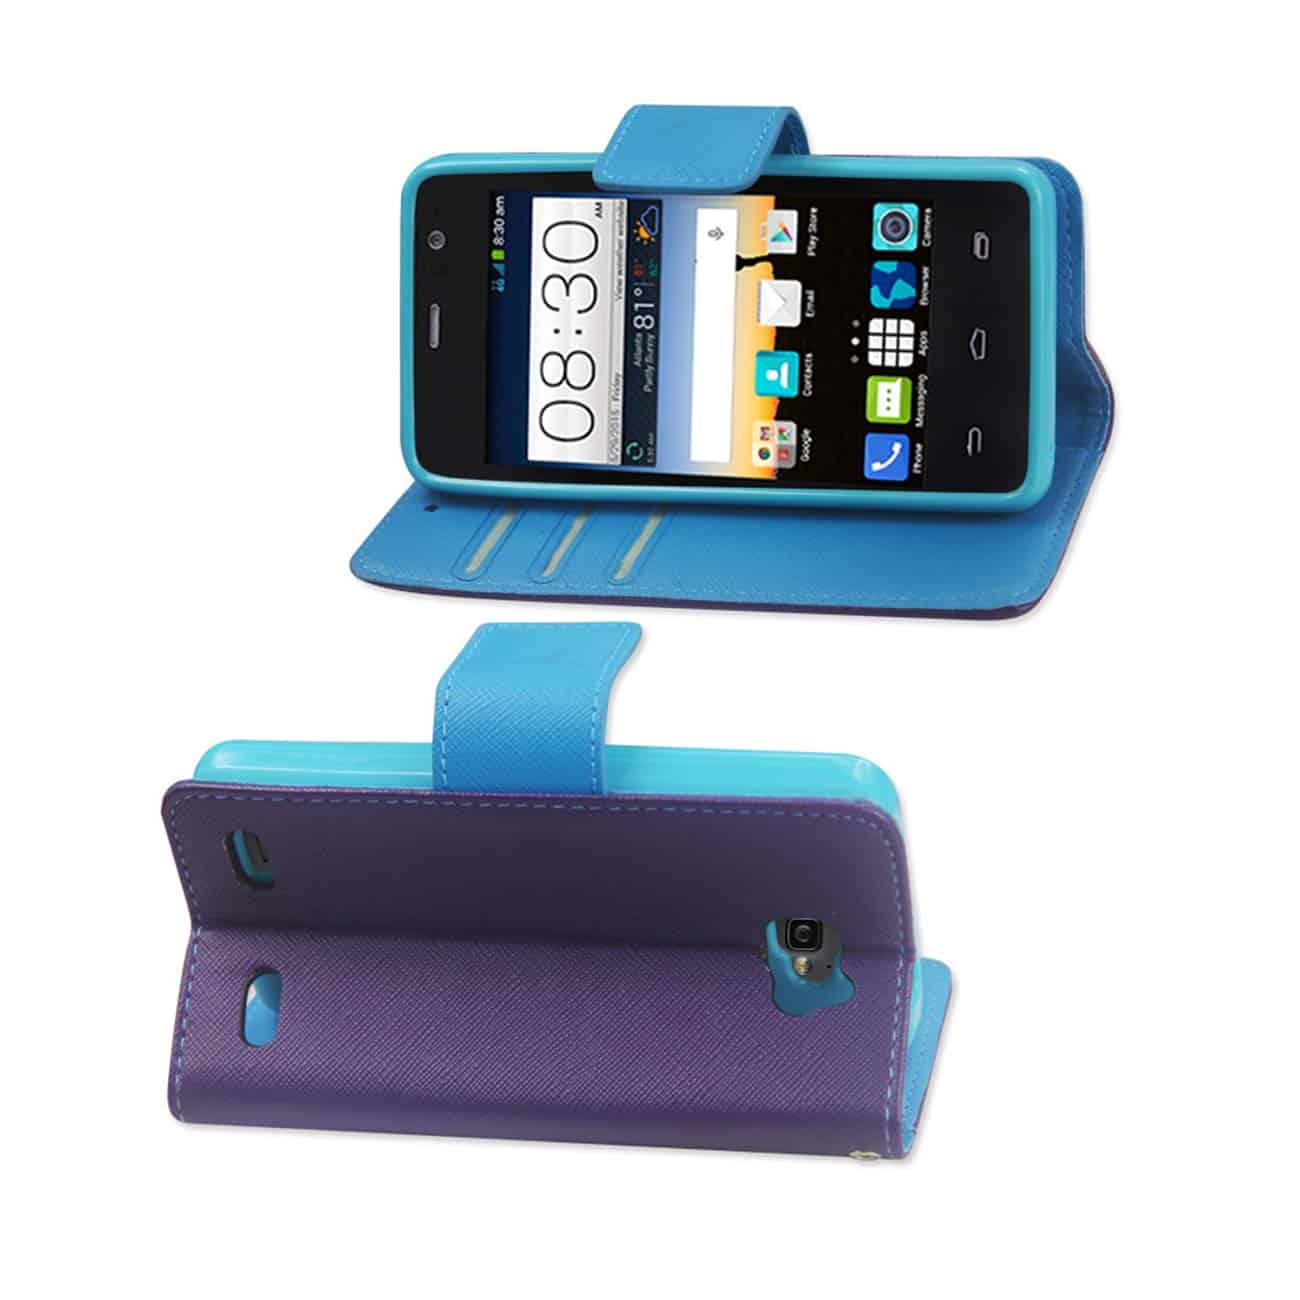 ZTE SONATA 2 3-IN-1 WALLET CASE IN PURPLE